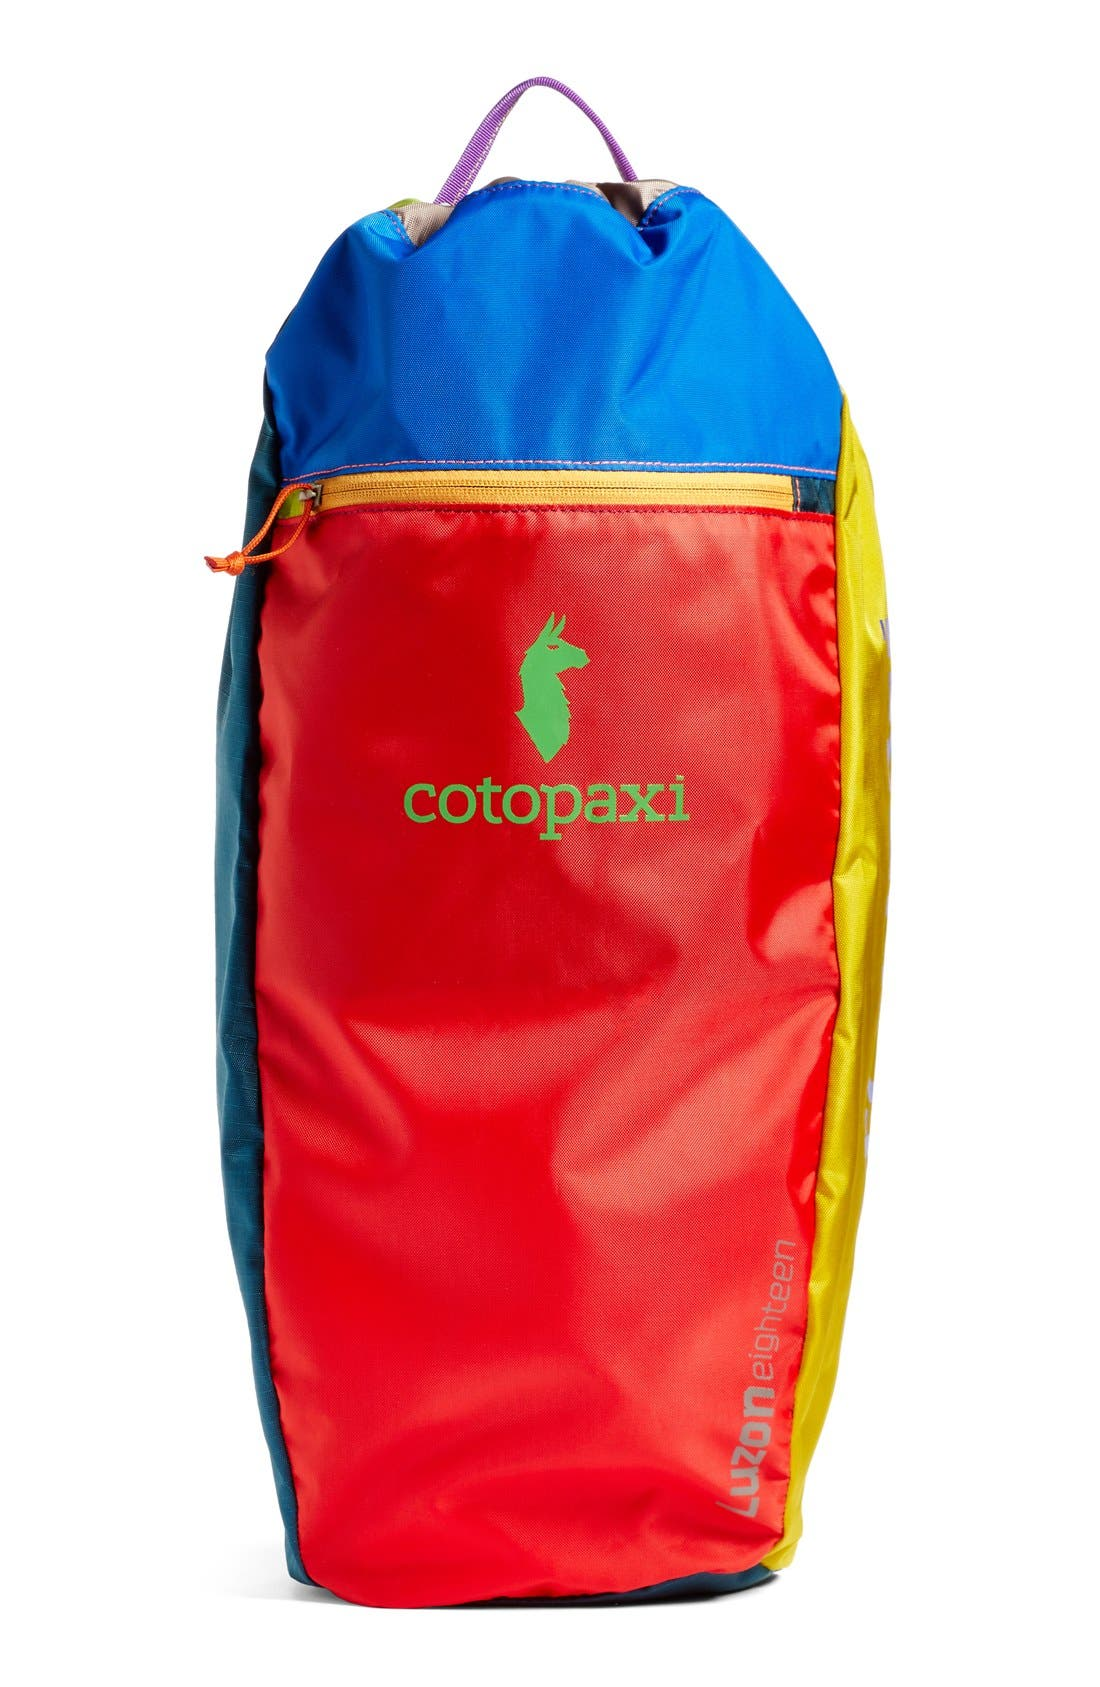 Luzon Del Dia One of a Kind Ripstop Nylon Daypack,                             Main thumbnail 1, color,                             960